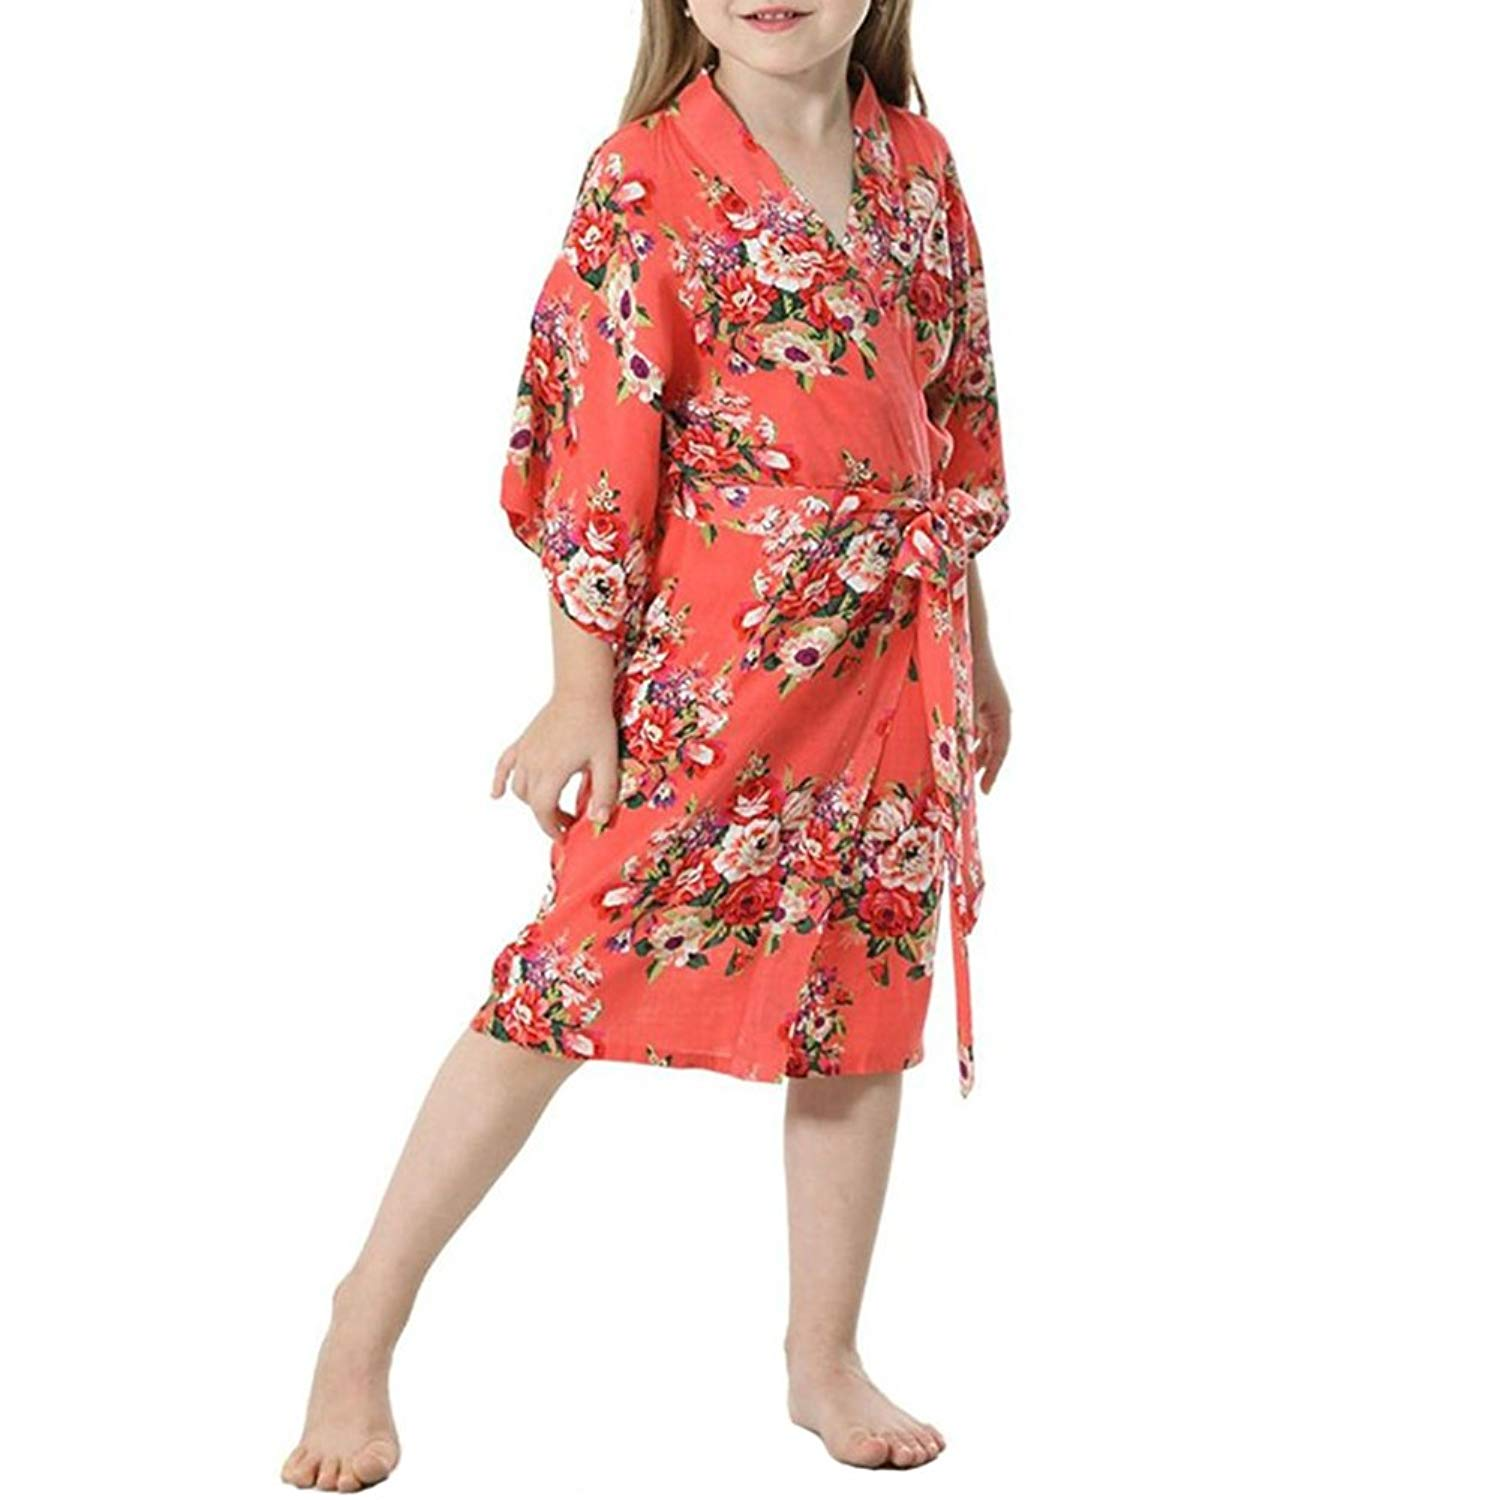 763c1b18b7 Get Quotations · YOLIA Kids Girls Robes Floral Printed Comfy Cotton Kimono  Nighties Dressing Gowns with Belt